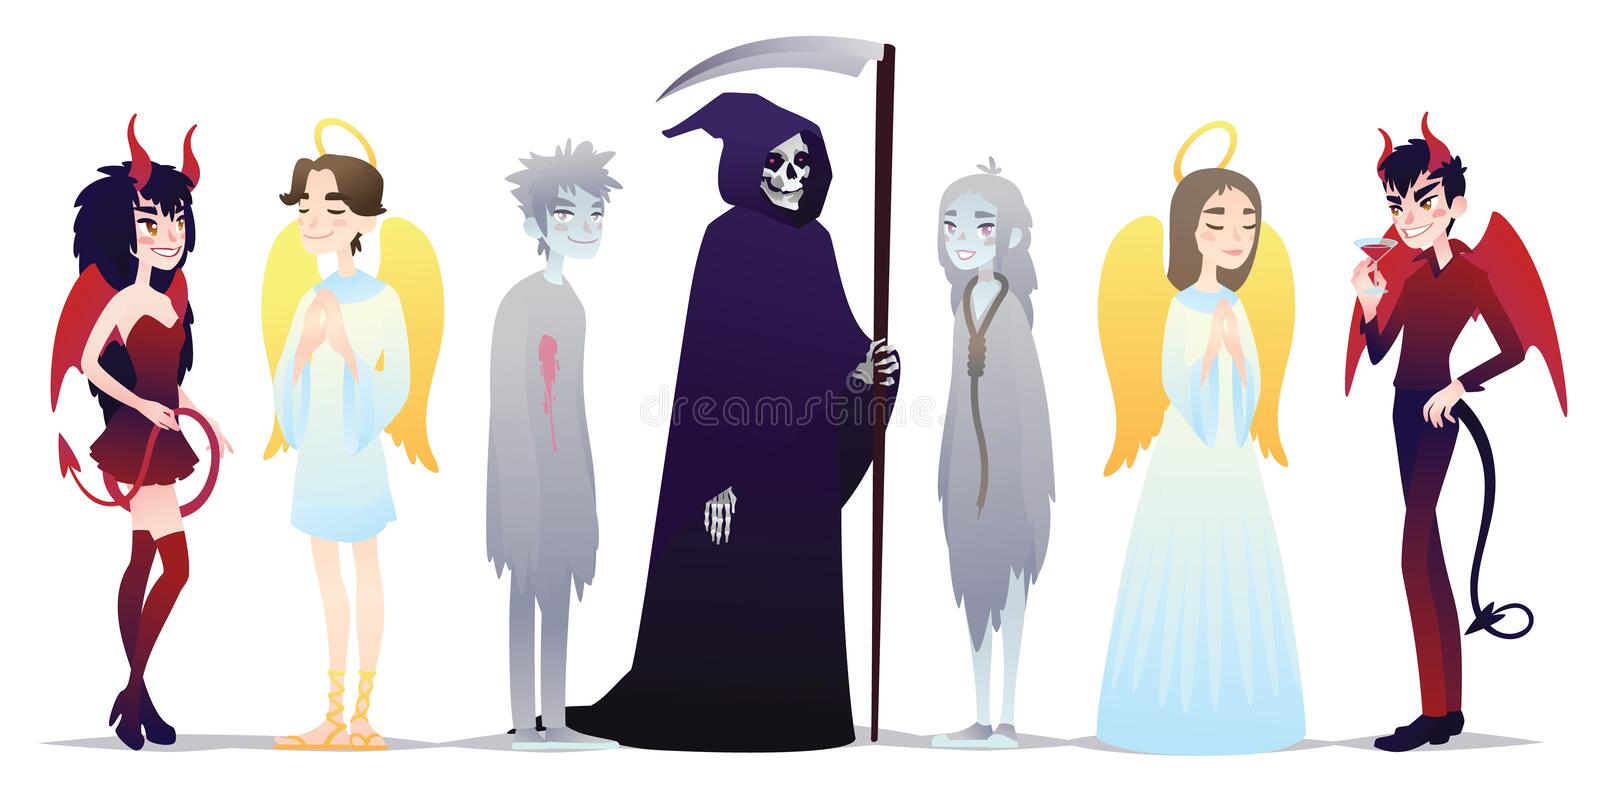 Halloween characters in cartoon style. Vector illustration of group of young people dressed up for Halloween masquerade vector illustration